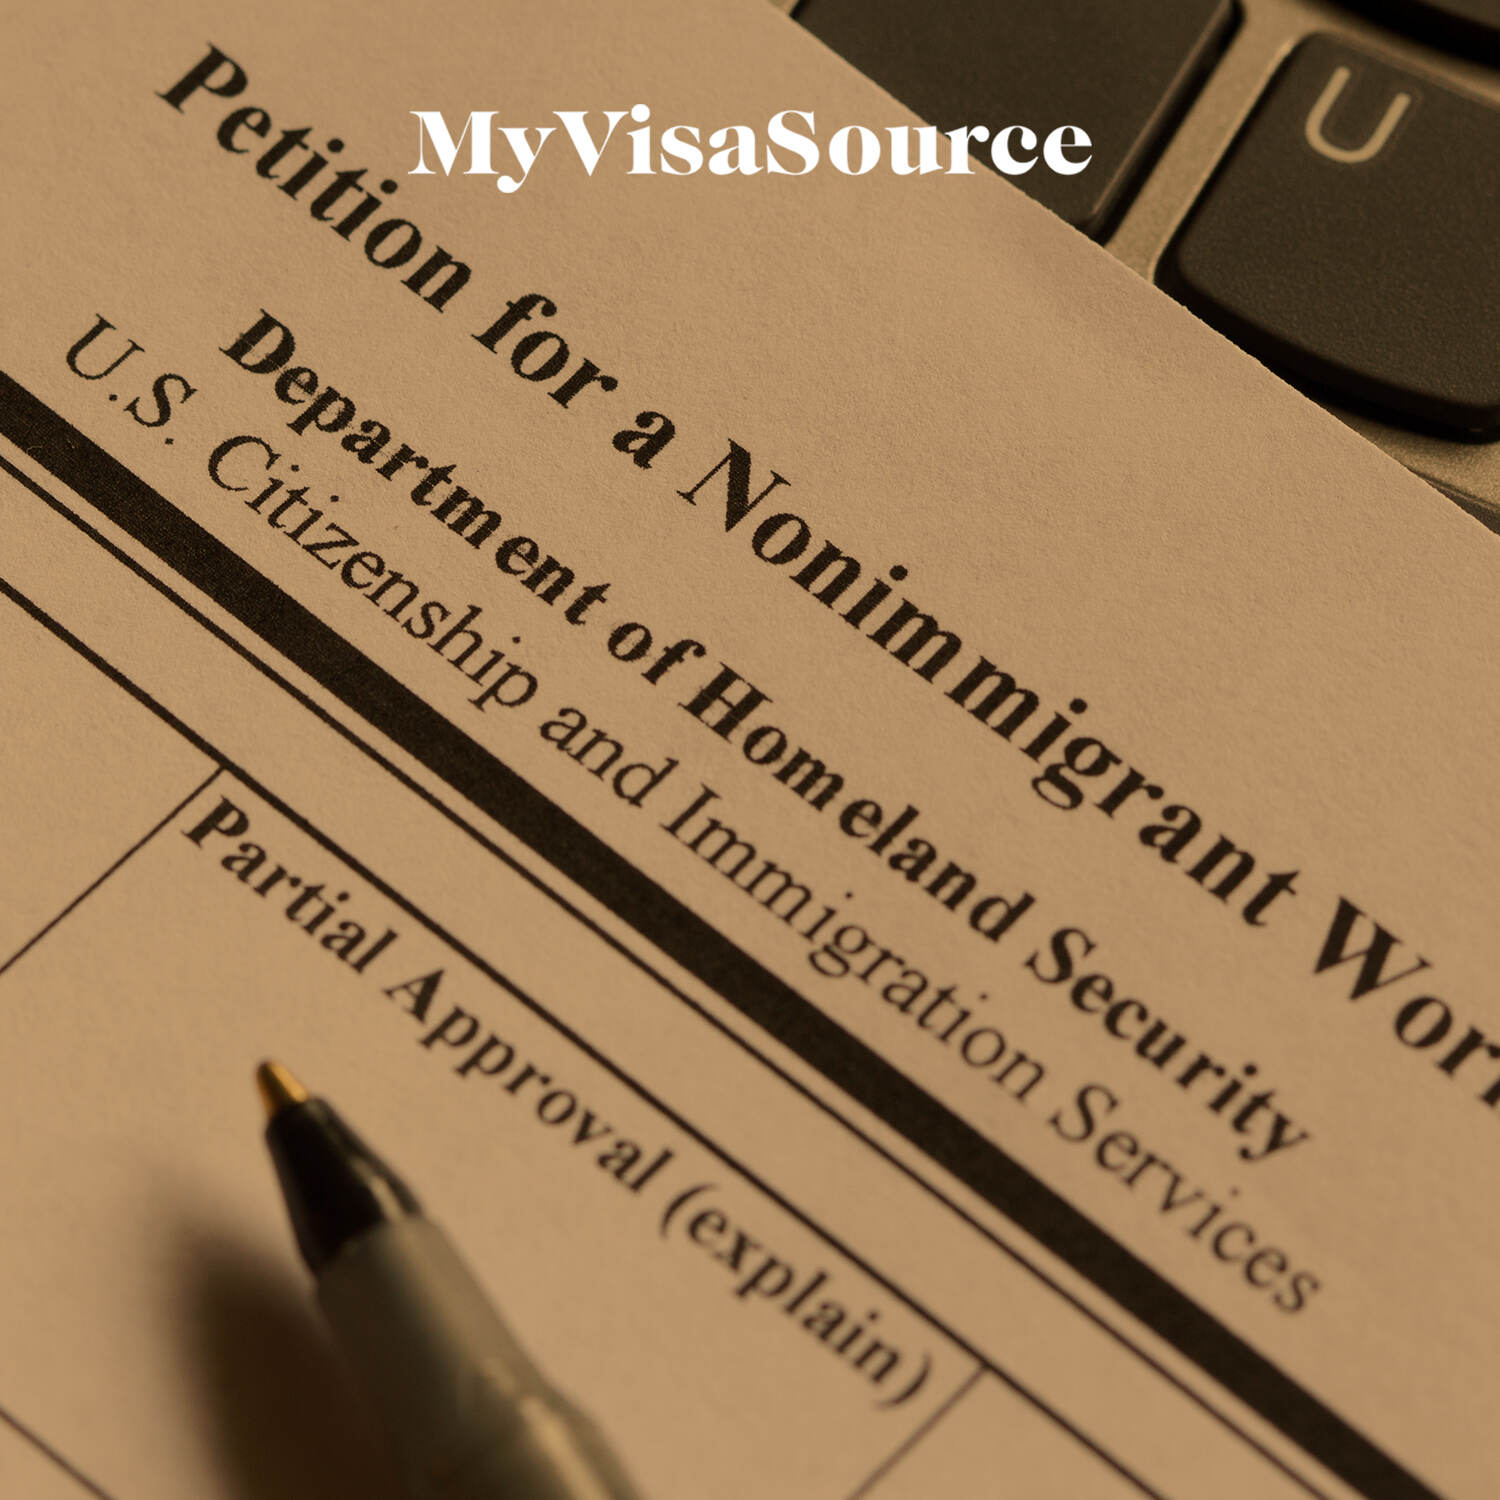 nonimmigrant work visa application with a pen resting on it my visa source